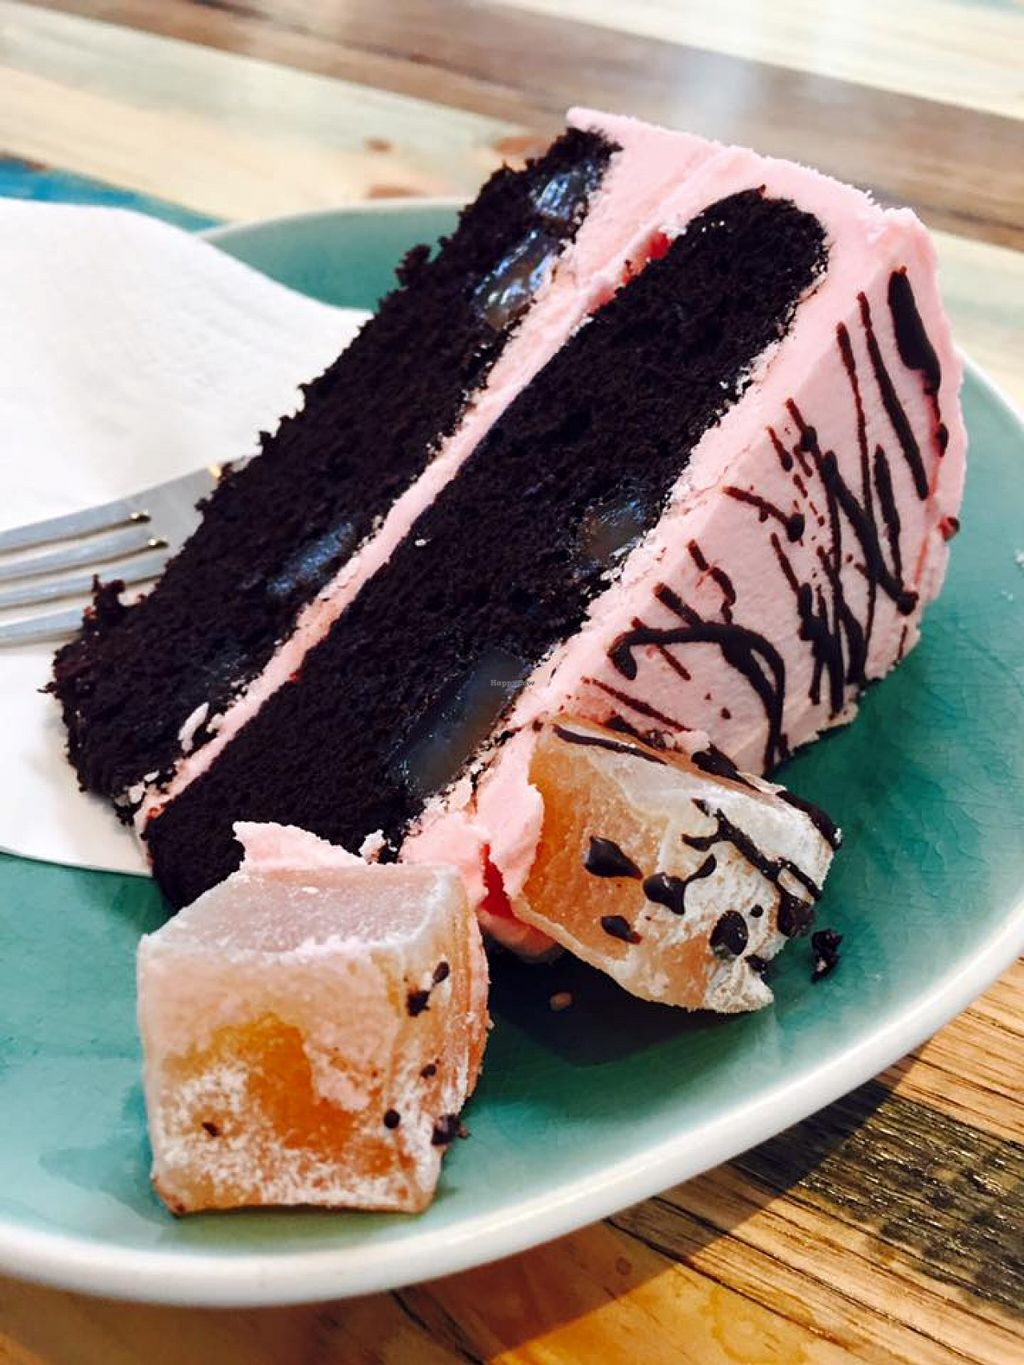 """Photo of CLOSED: The Surprise Vegan  by <a href=""""/members/profile/karlaess"""">karlaess</a> <br/>Turkish delight cake <br/> December 11, 2015  - <a href='/contact/abuse/image/66529/127910'>Report</a>"""